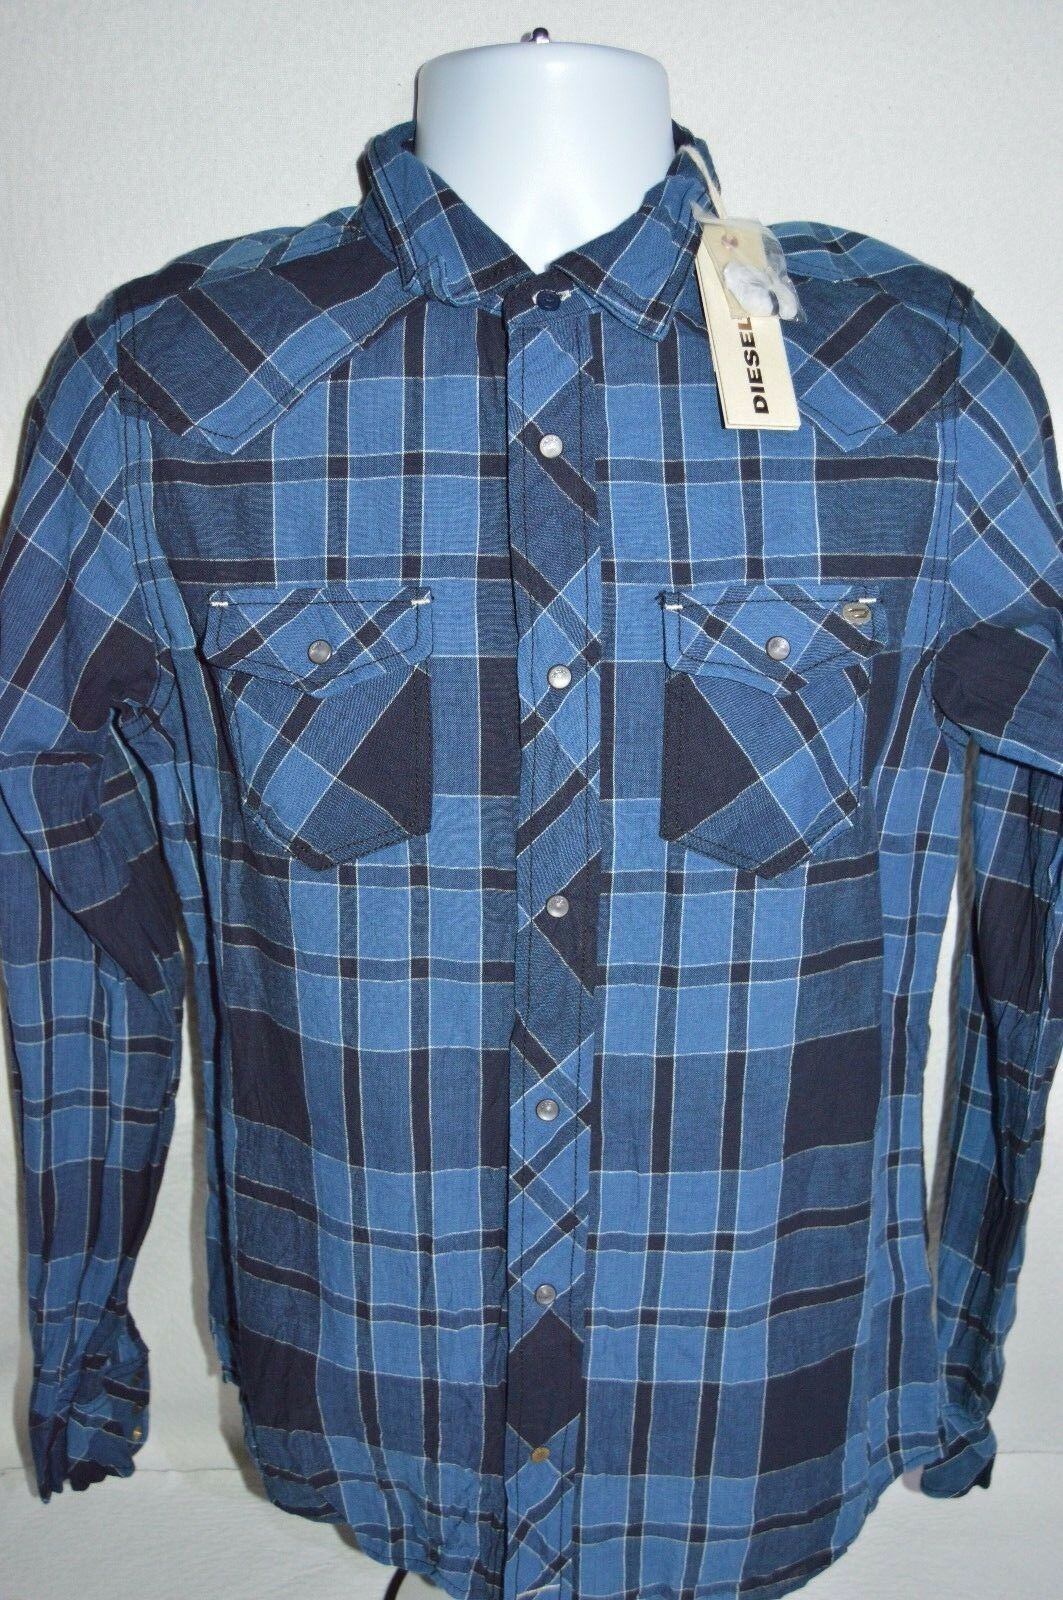 DIESEL Man's SONORA Utility Plaid Shirt  NEW  Size Small   Retail